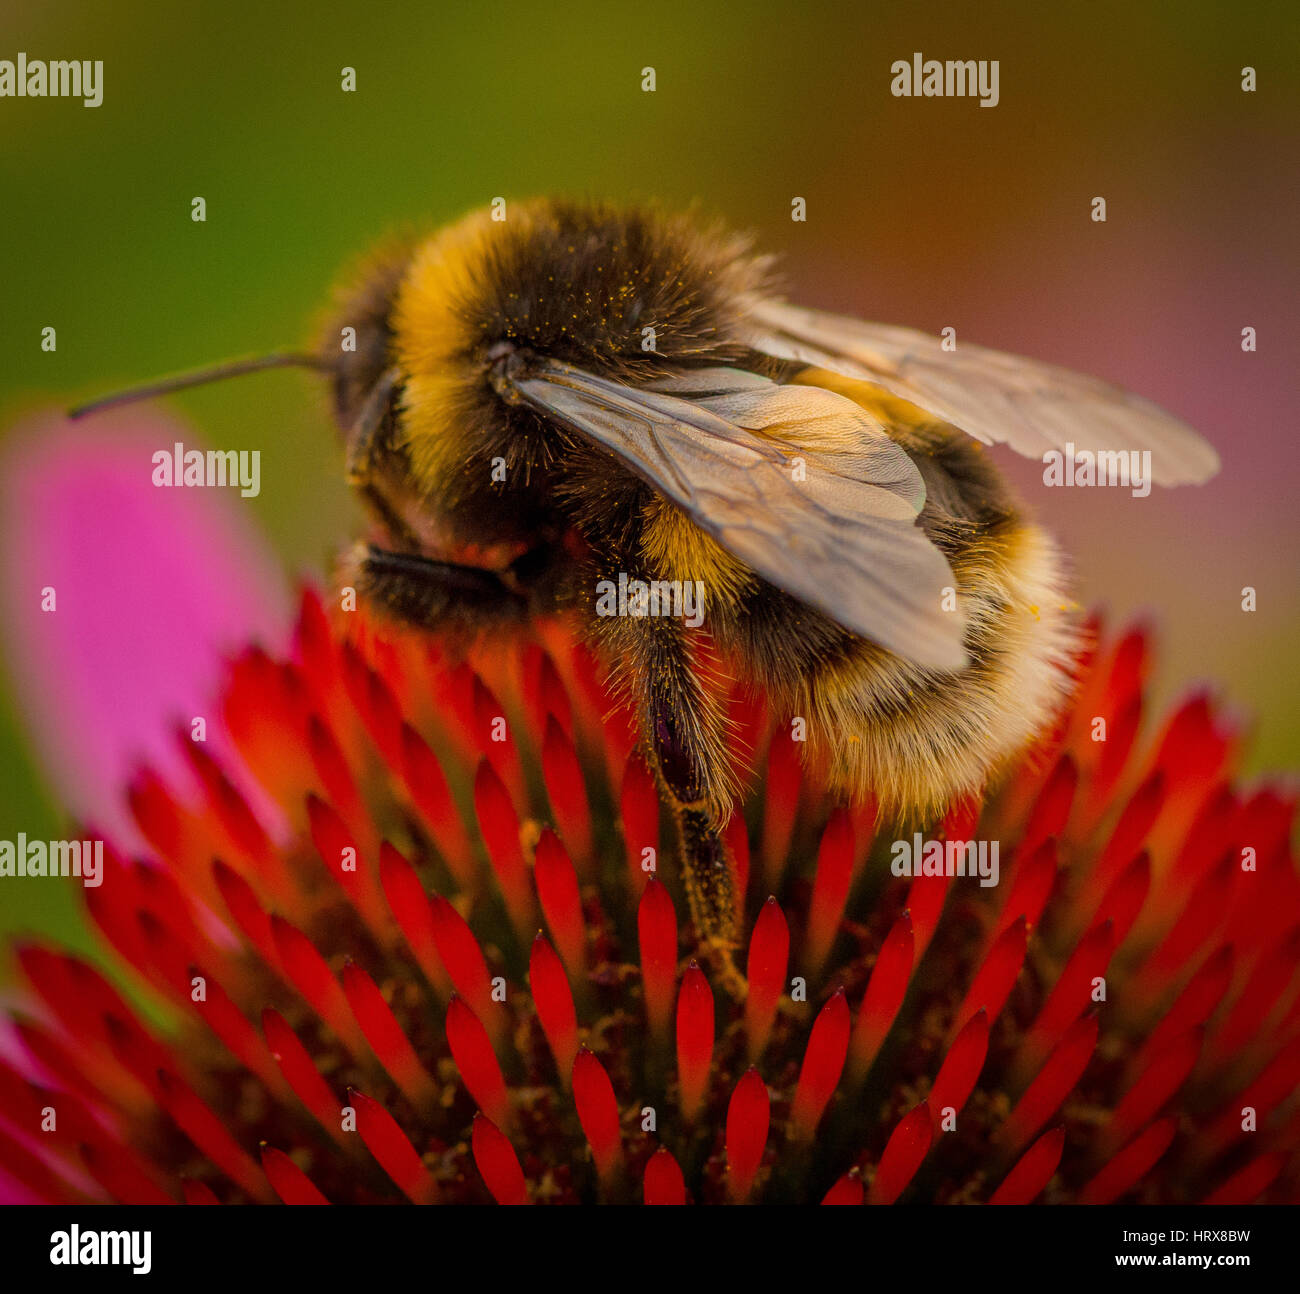 Bumble Bee collecting pollen from the garden flower - Stock Image